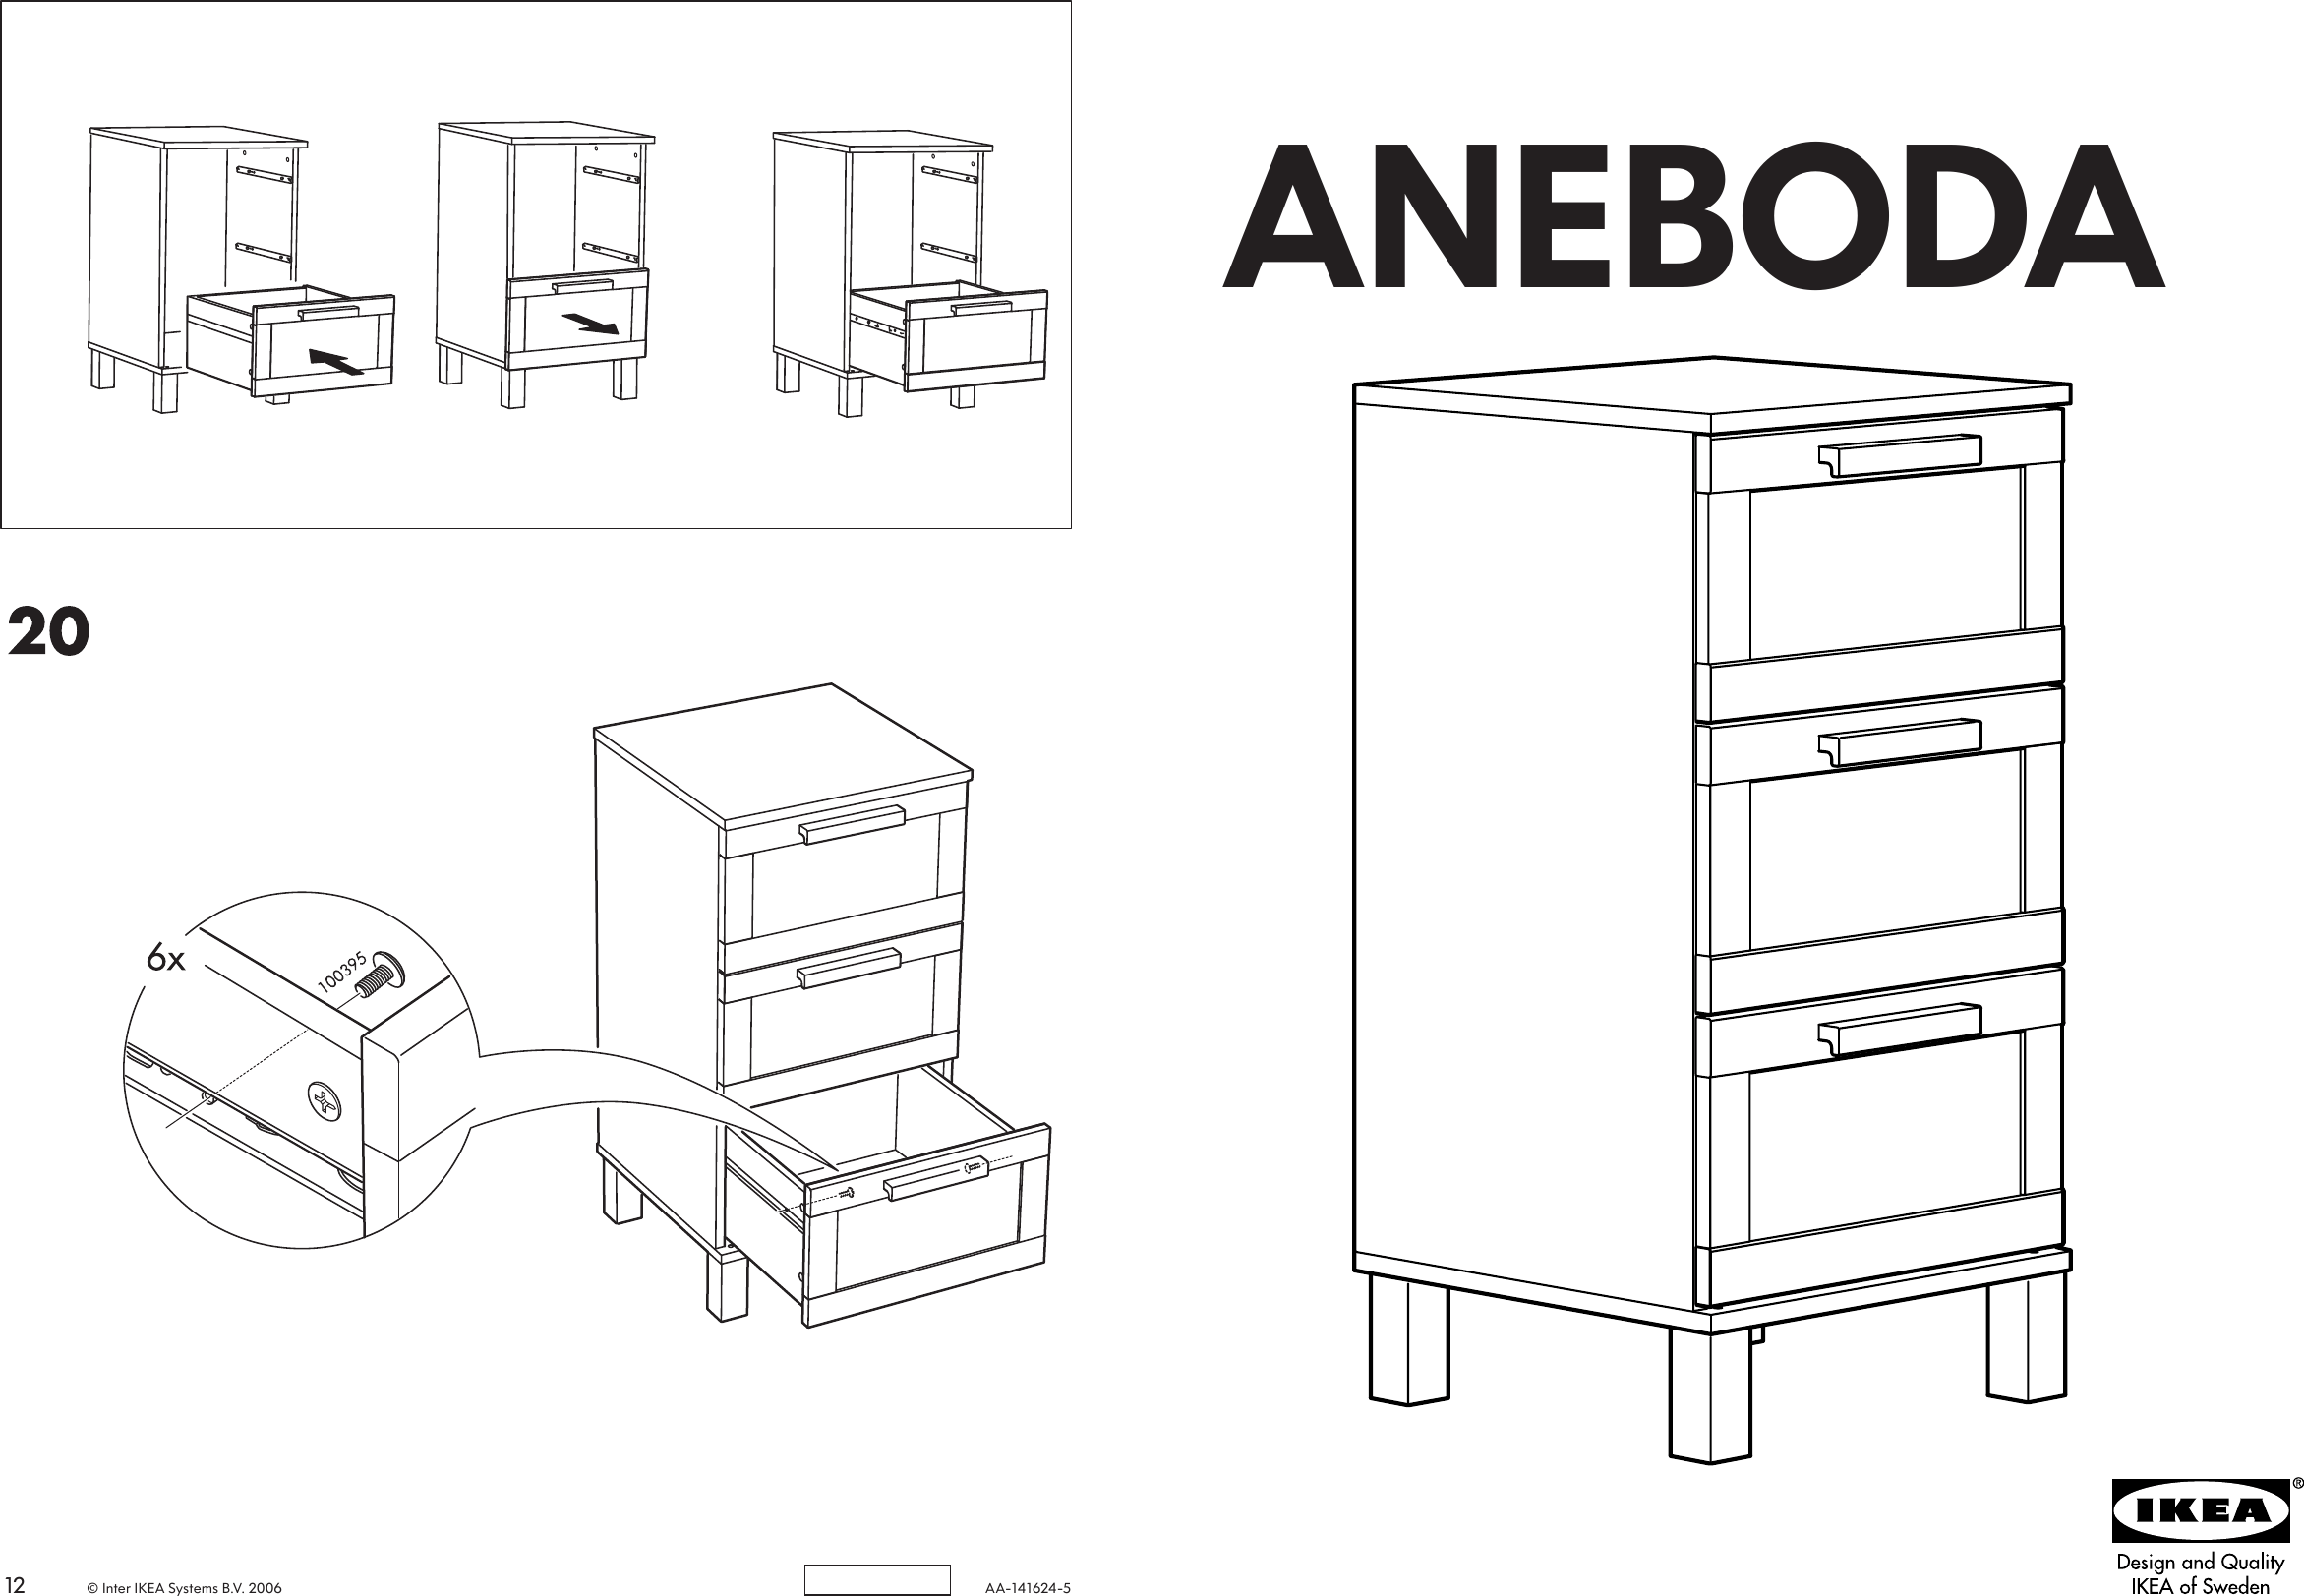 Aneboda Chest Of Drawers Ikea Aneboda Chest 3draw 16x32 Wht Assembly Instruction